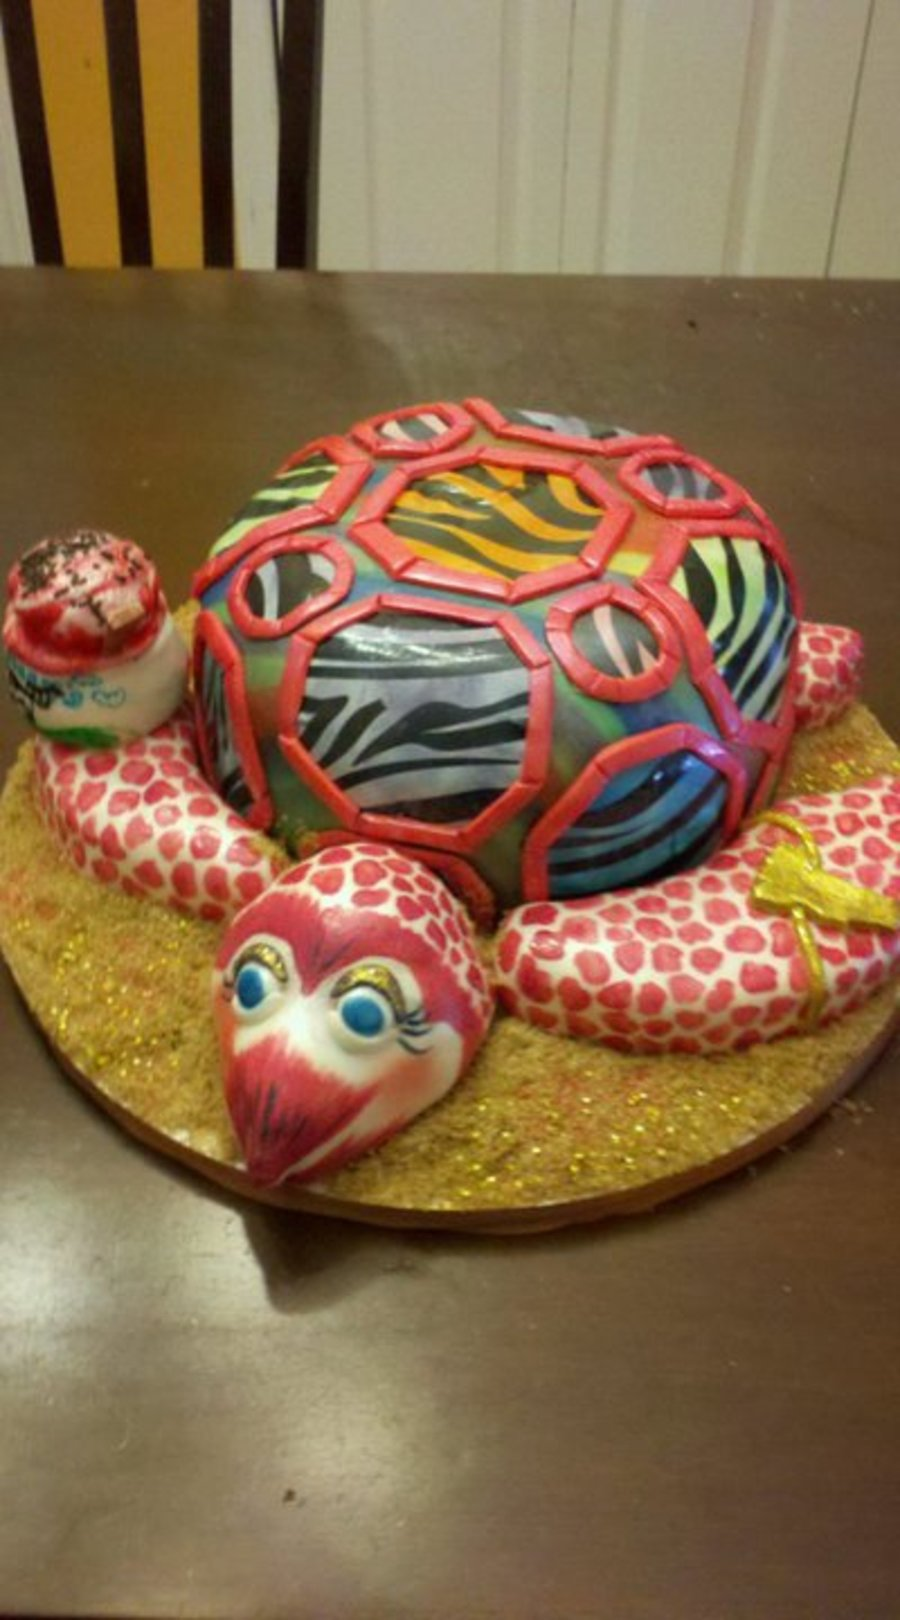 Super Rad 80's Sea Turtle...from Vermont. :) on Cake Central